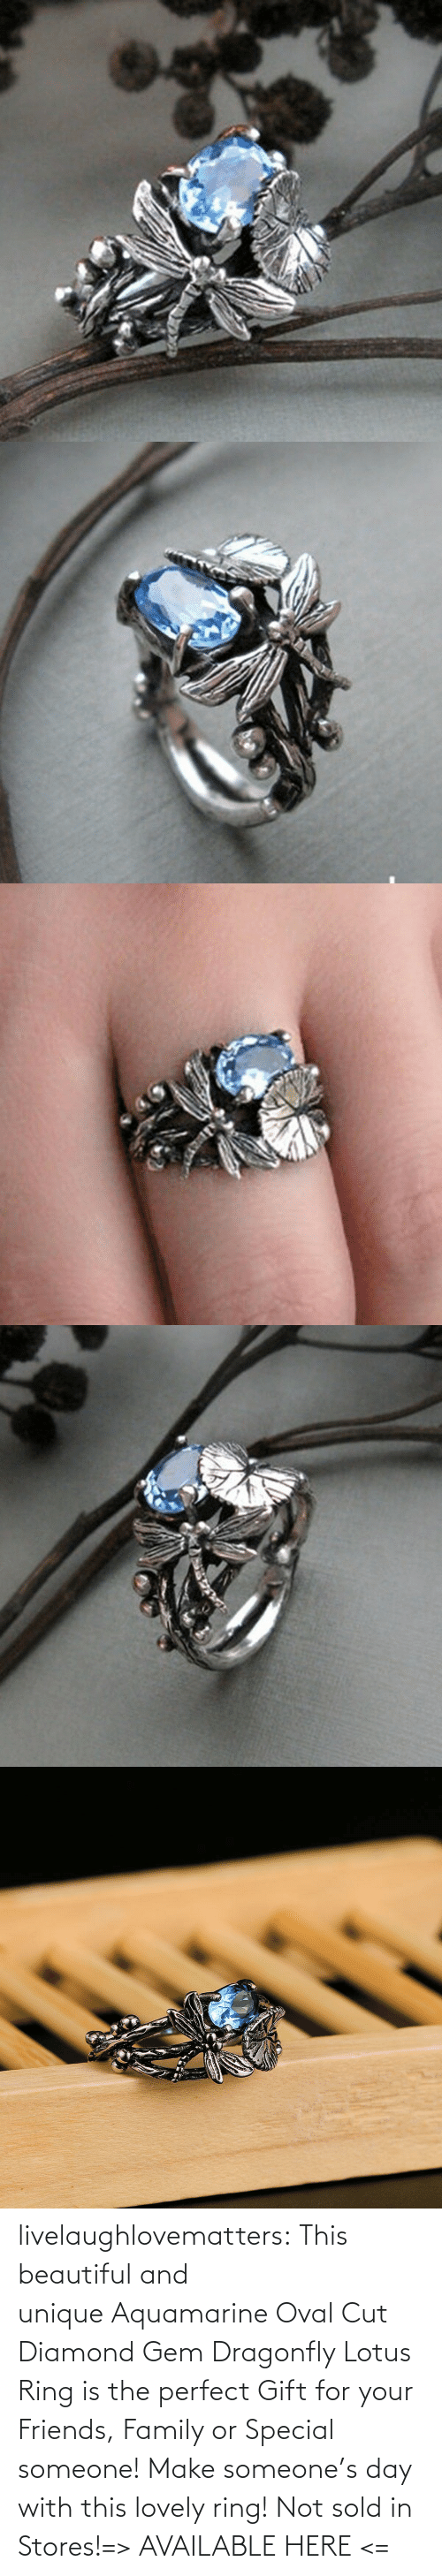 Lotus: livelaughlovematters:  This beautiful and unique Aquamarine Oval Cut Diamond Gem Dragonfly Lotus Ring is the perfect Gift for your Friends, Family or Special someone! Make someone's day with this lovely ring! Not sold in Stores!=> AVAILABLE HERE <=